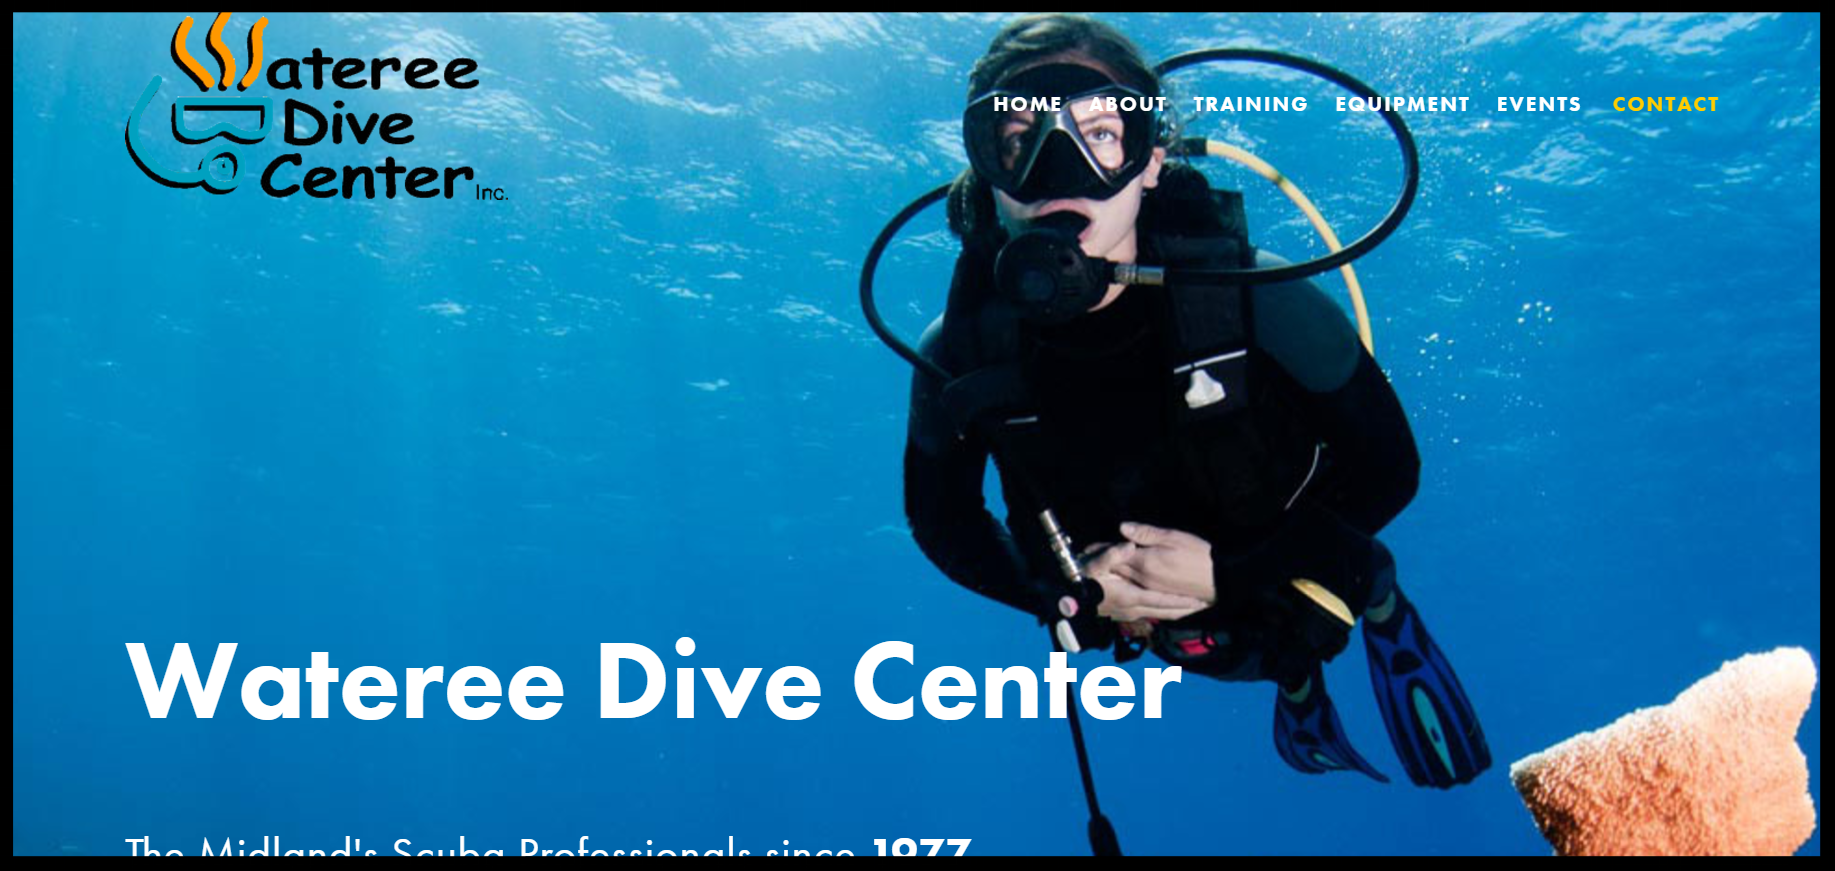 Wateree Dive Center - From online training to class and event registration, WDC's got it.